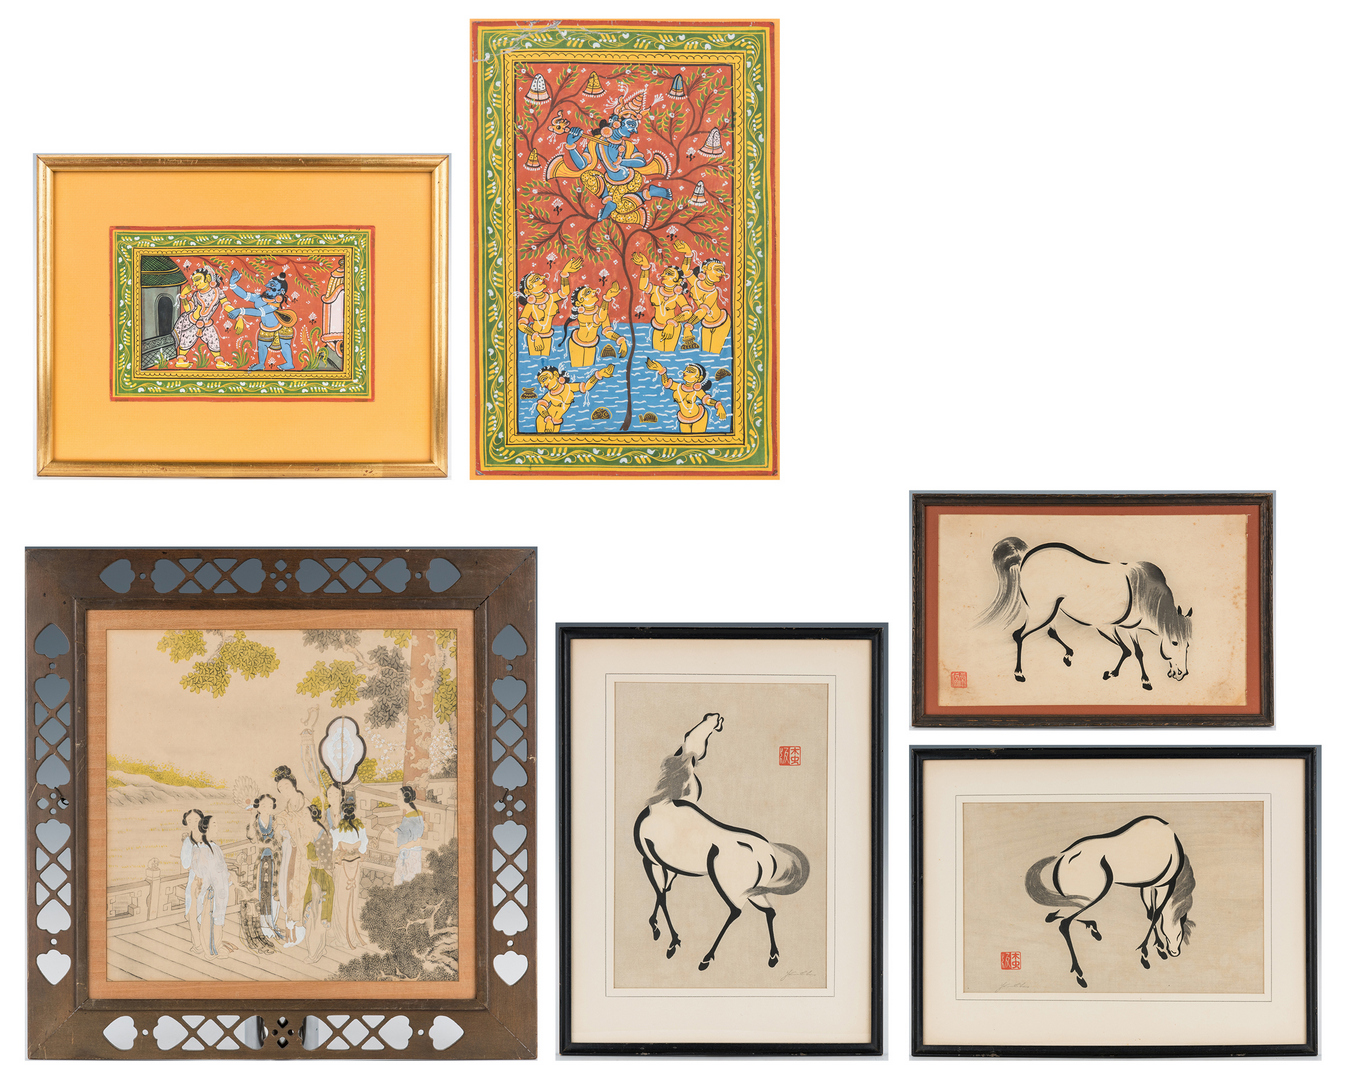 Lot 1003: 6 Asian Works of Art, incl. Mughal Paintings